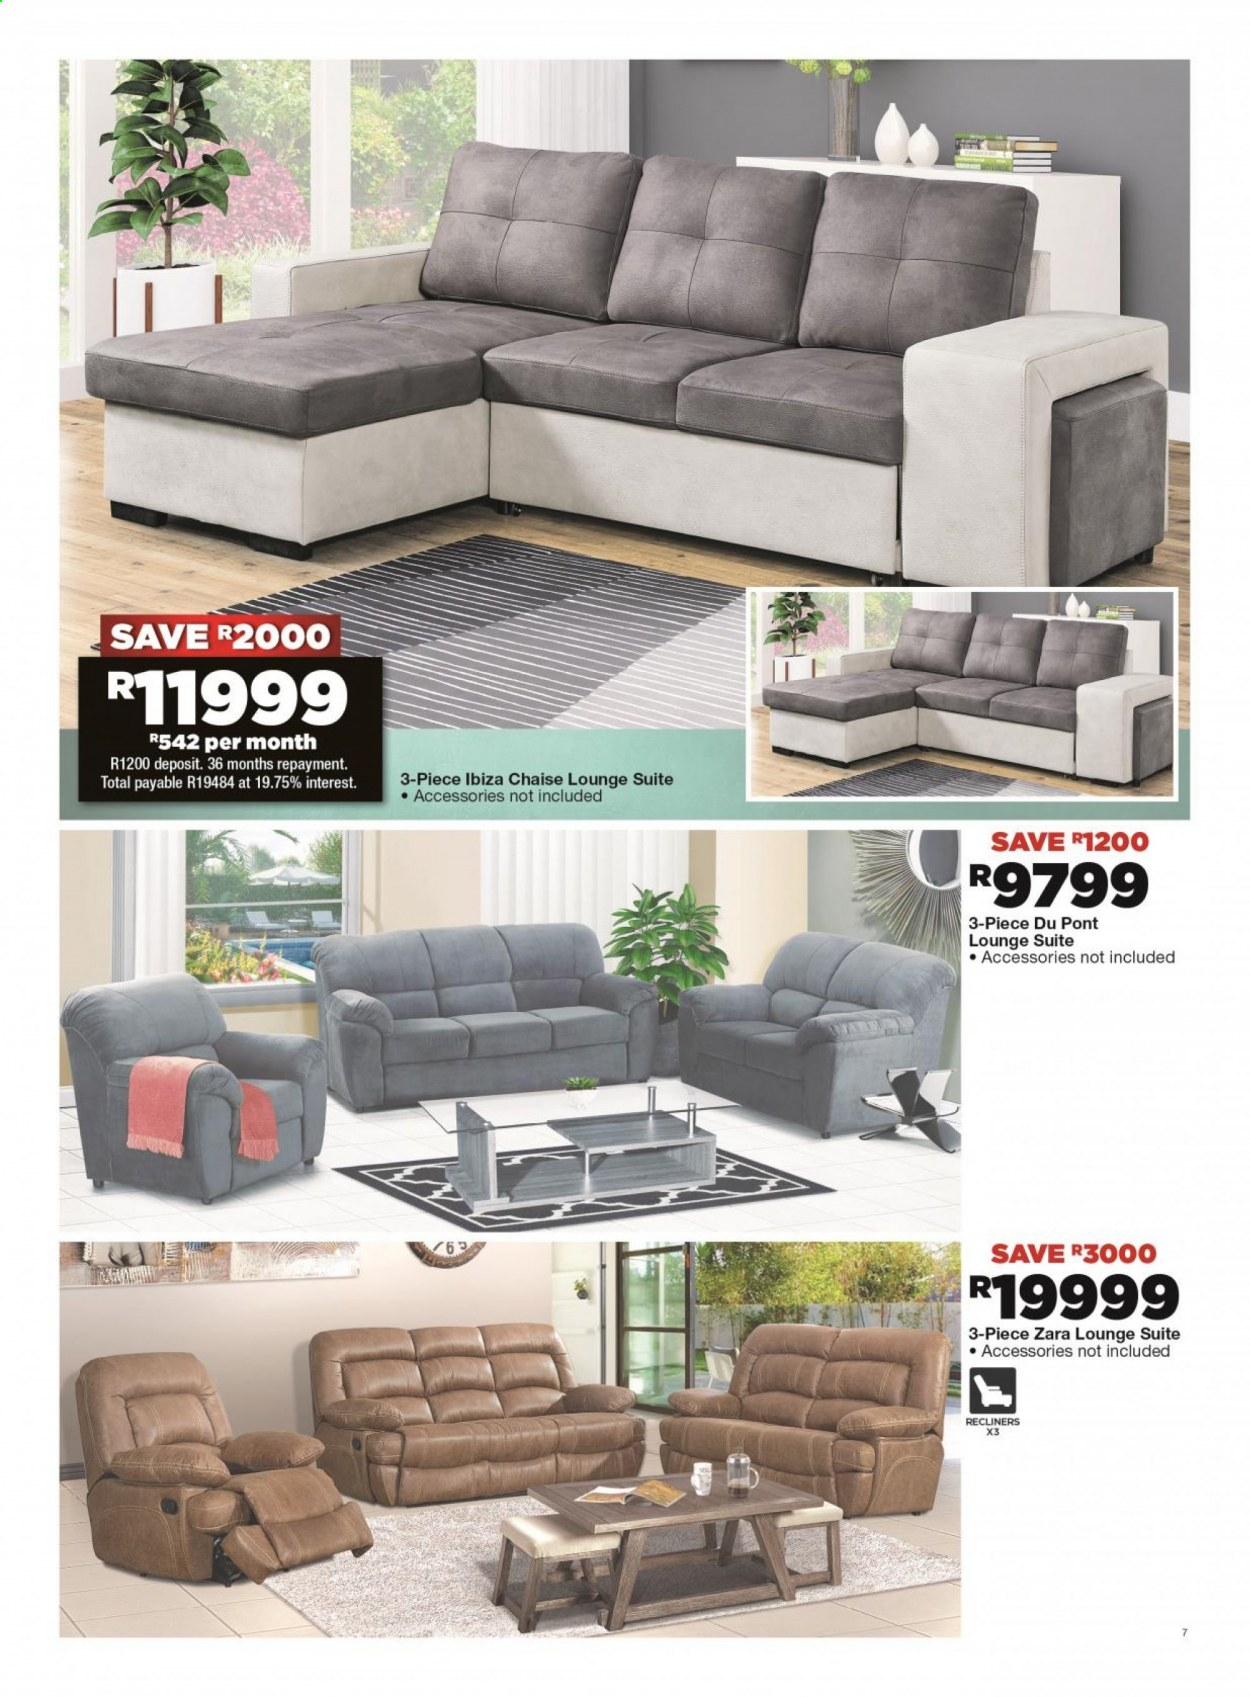 House & Home catalogue  - 07.06.2020 - 07.19.2020. Page 7.